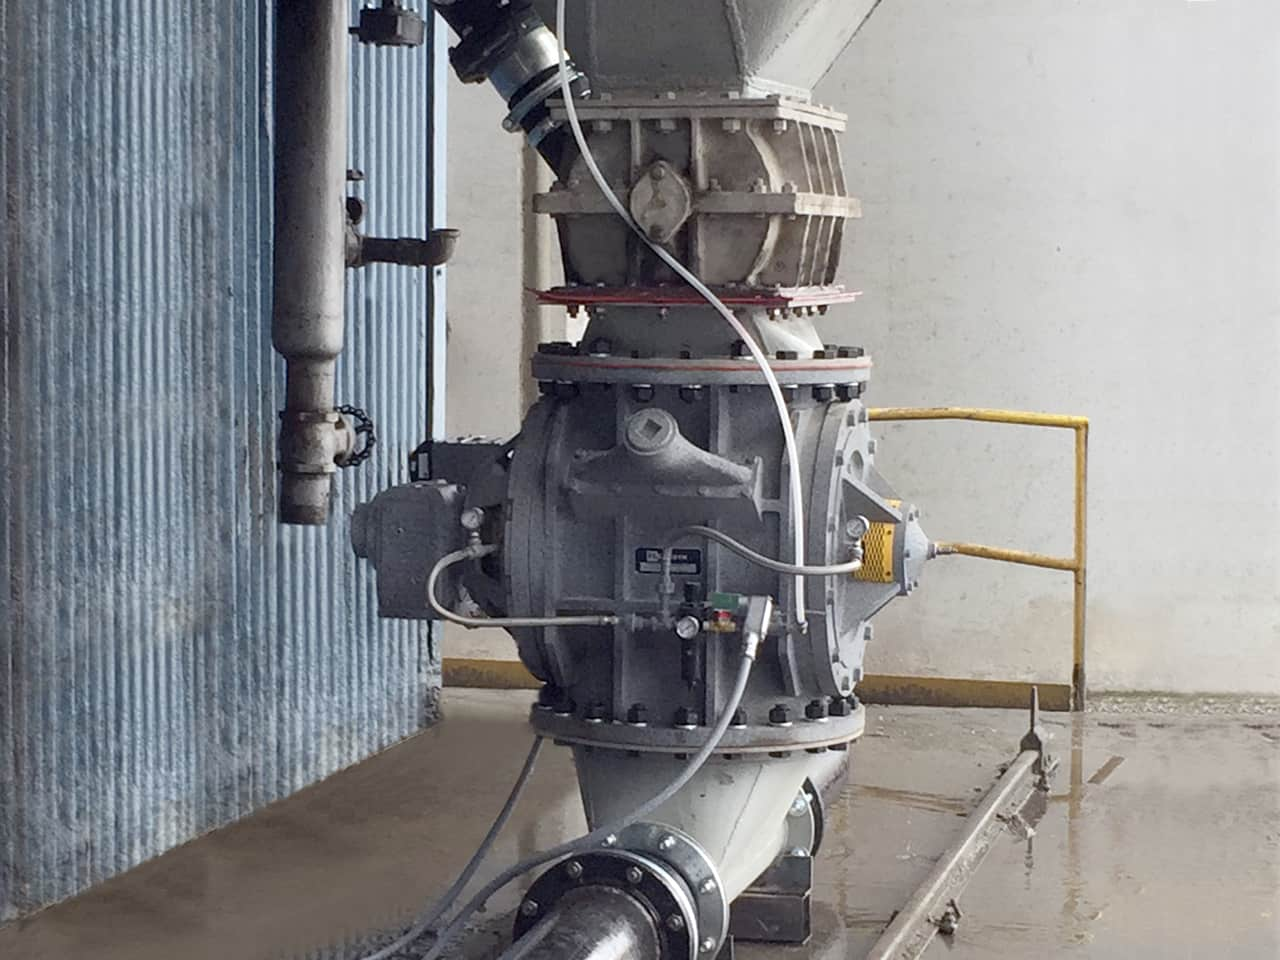 An installed V-Series Feeder unit